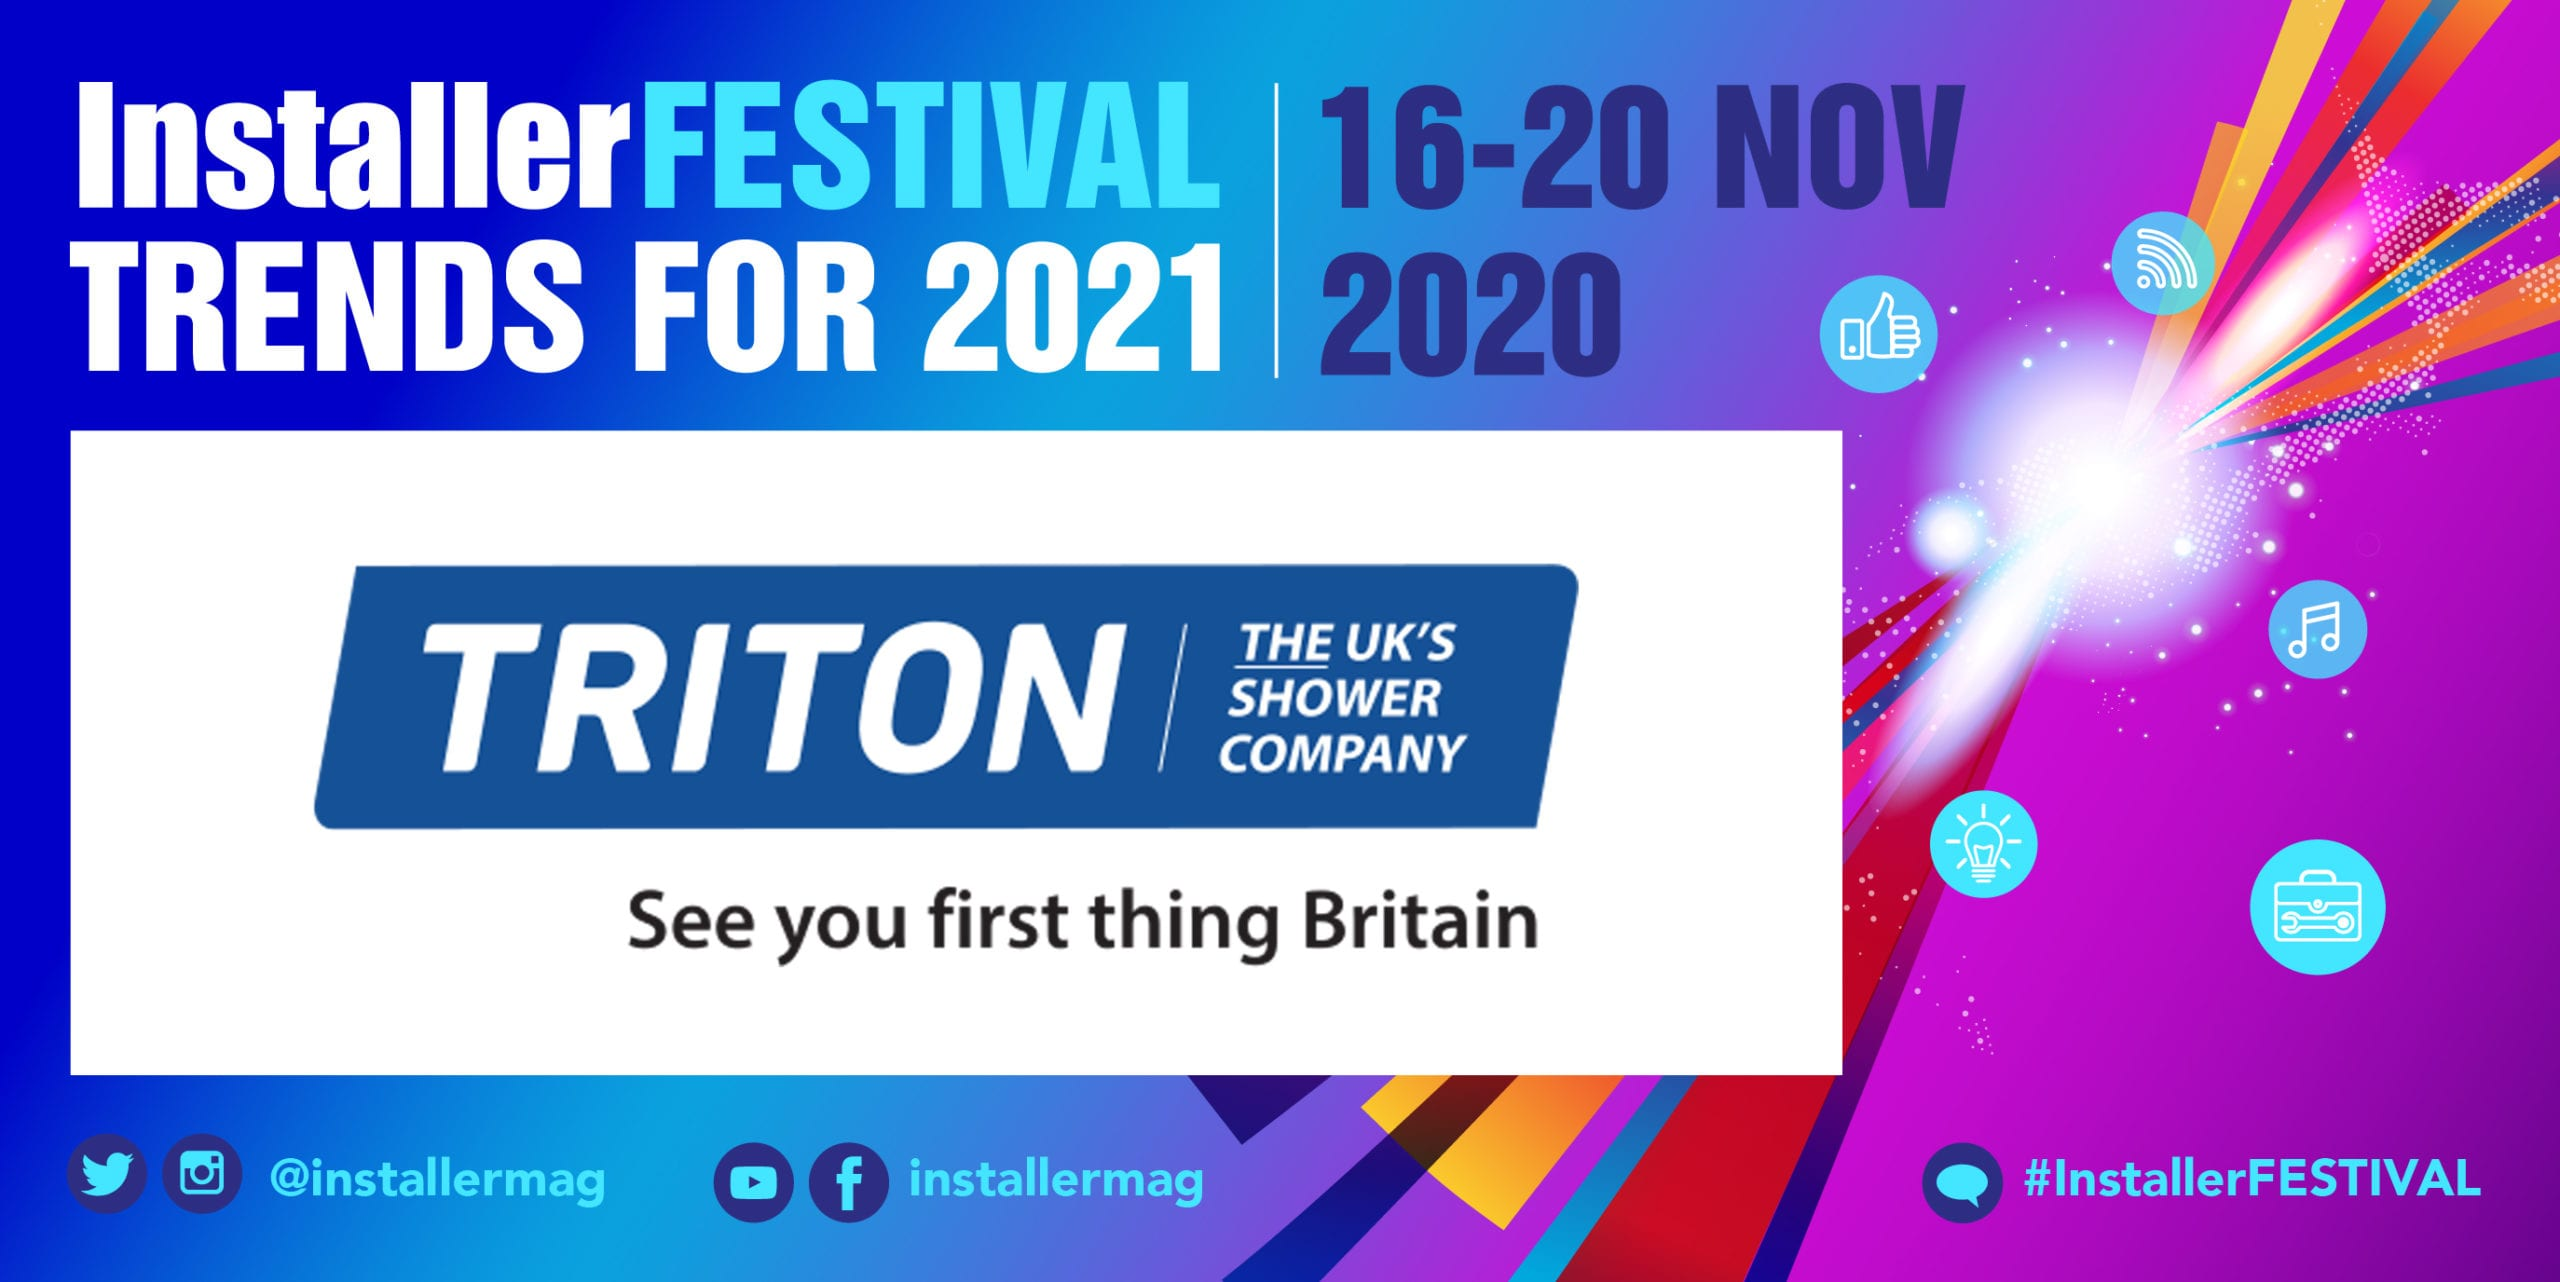 Popular - Triton Showers Q&A gives heads up on the future of training and launches competition with InstallerFESTIVAL